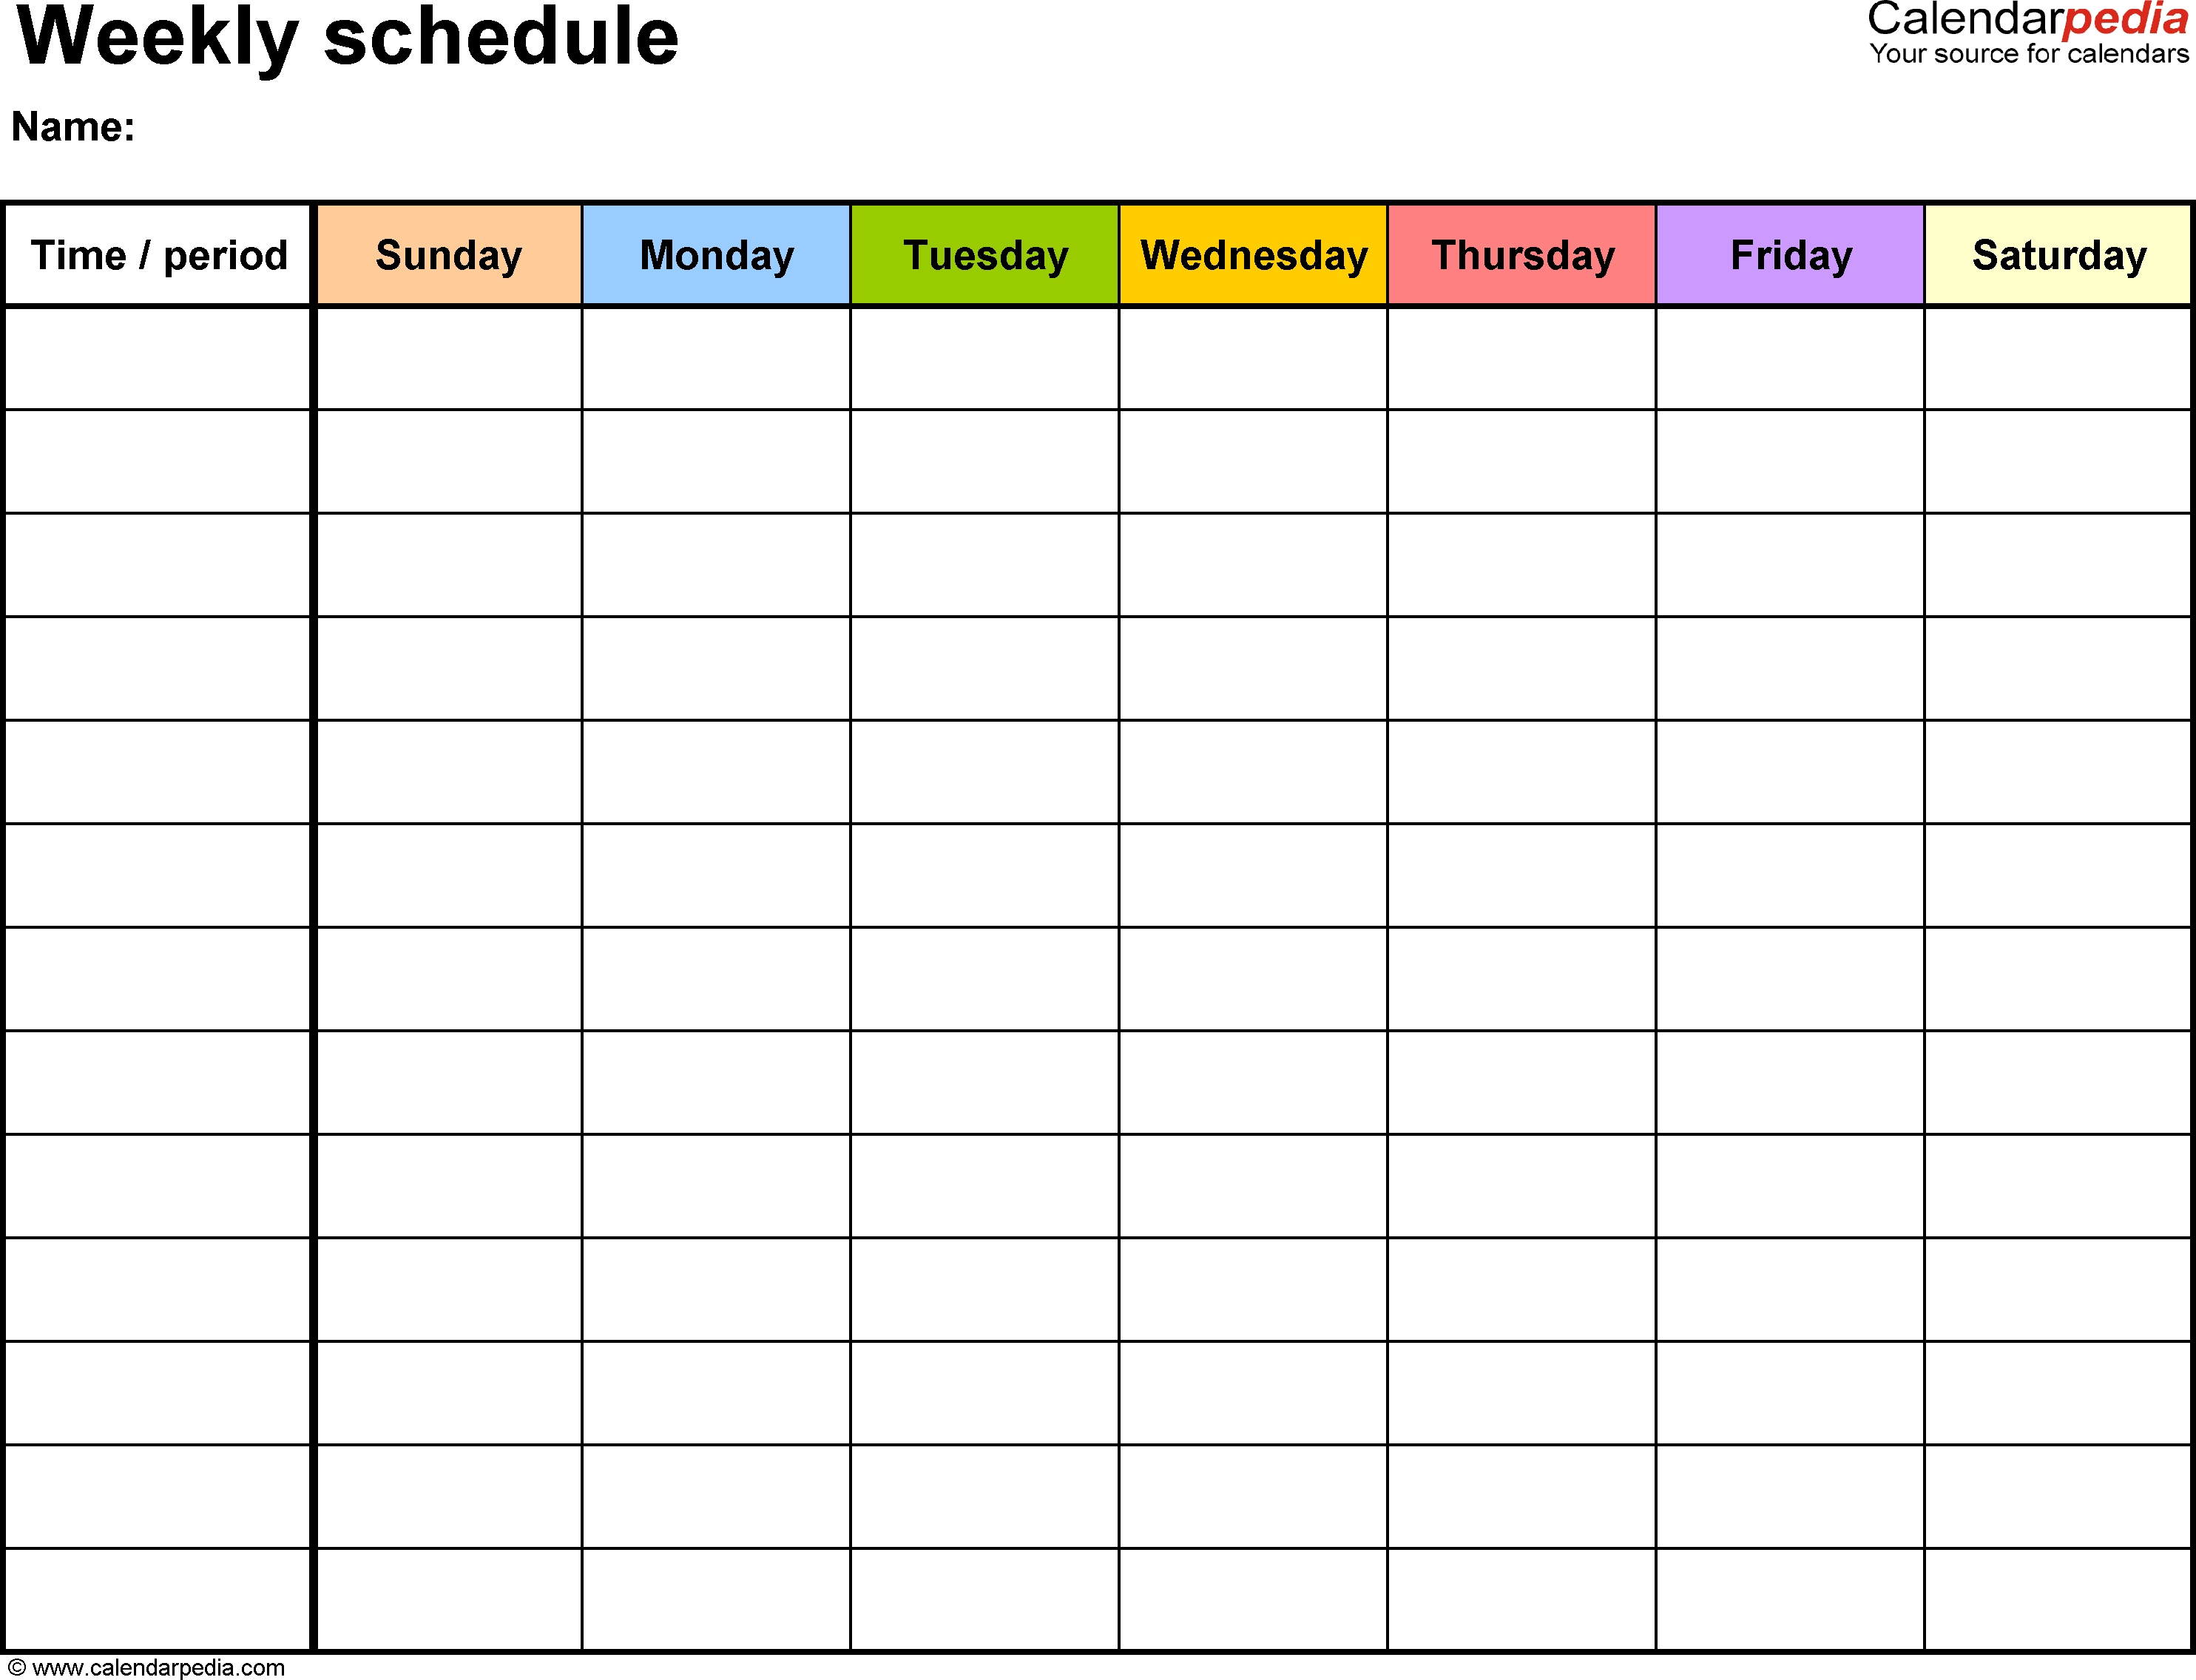 Free Weekly Schedule Templates For Word - 18 Templates pertaining to 7 Day Calendar Template Free